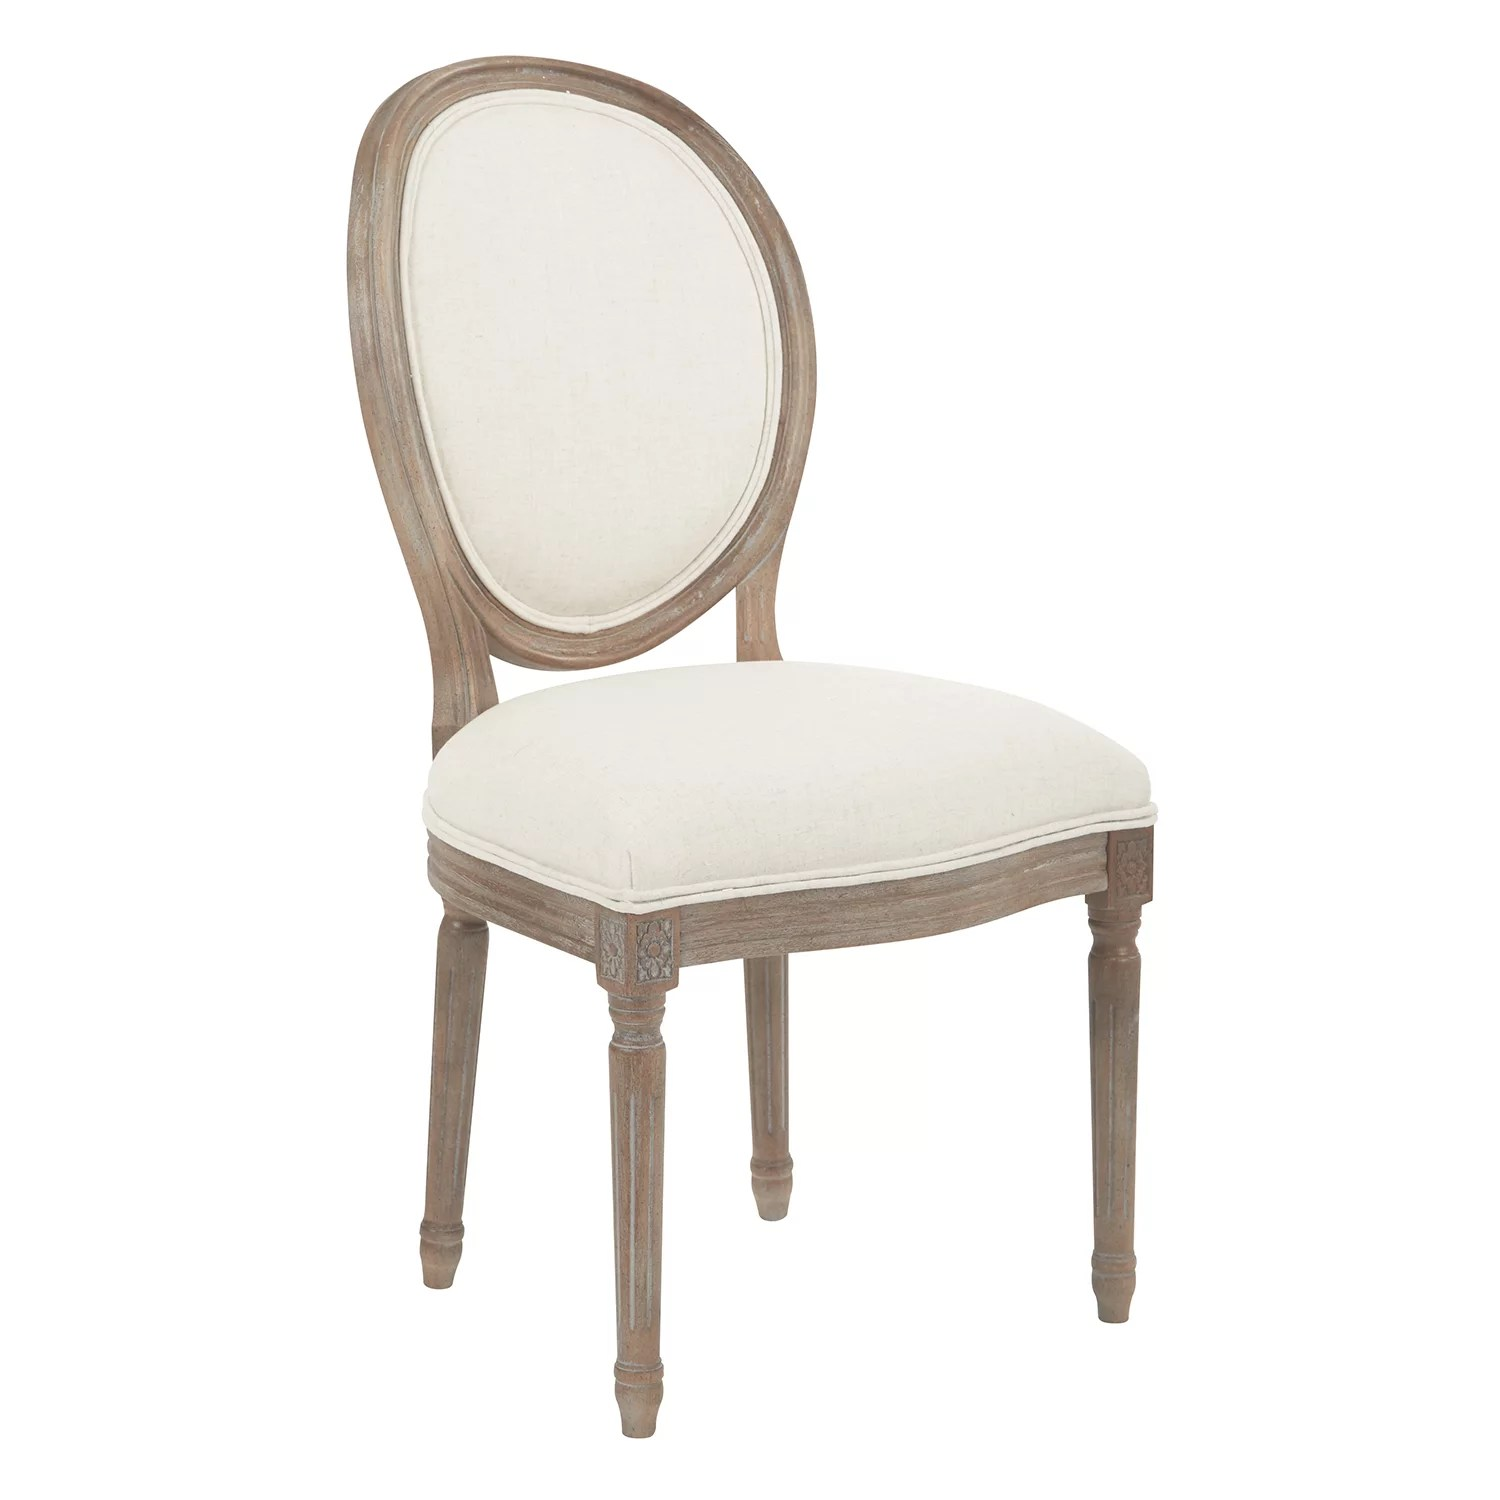 kohls dining chairs slipcovers for armless amazonia furniture kohl s